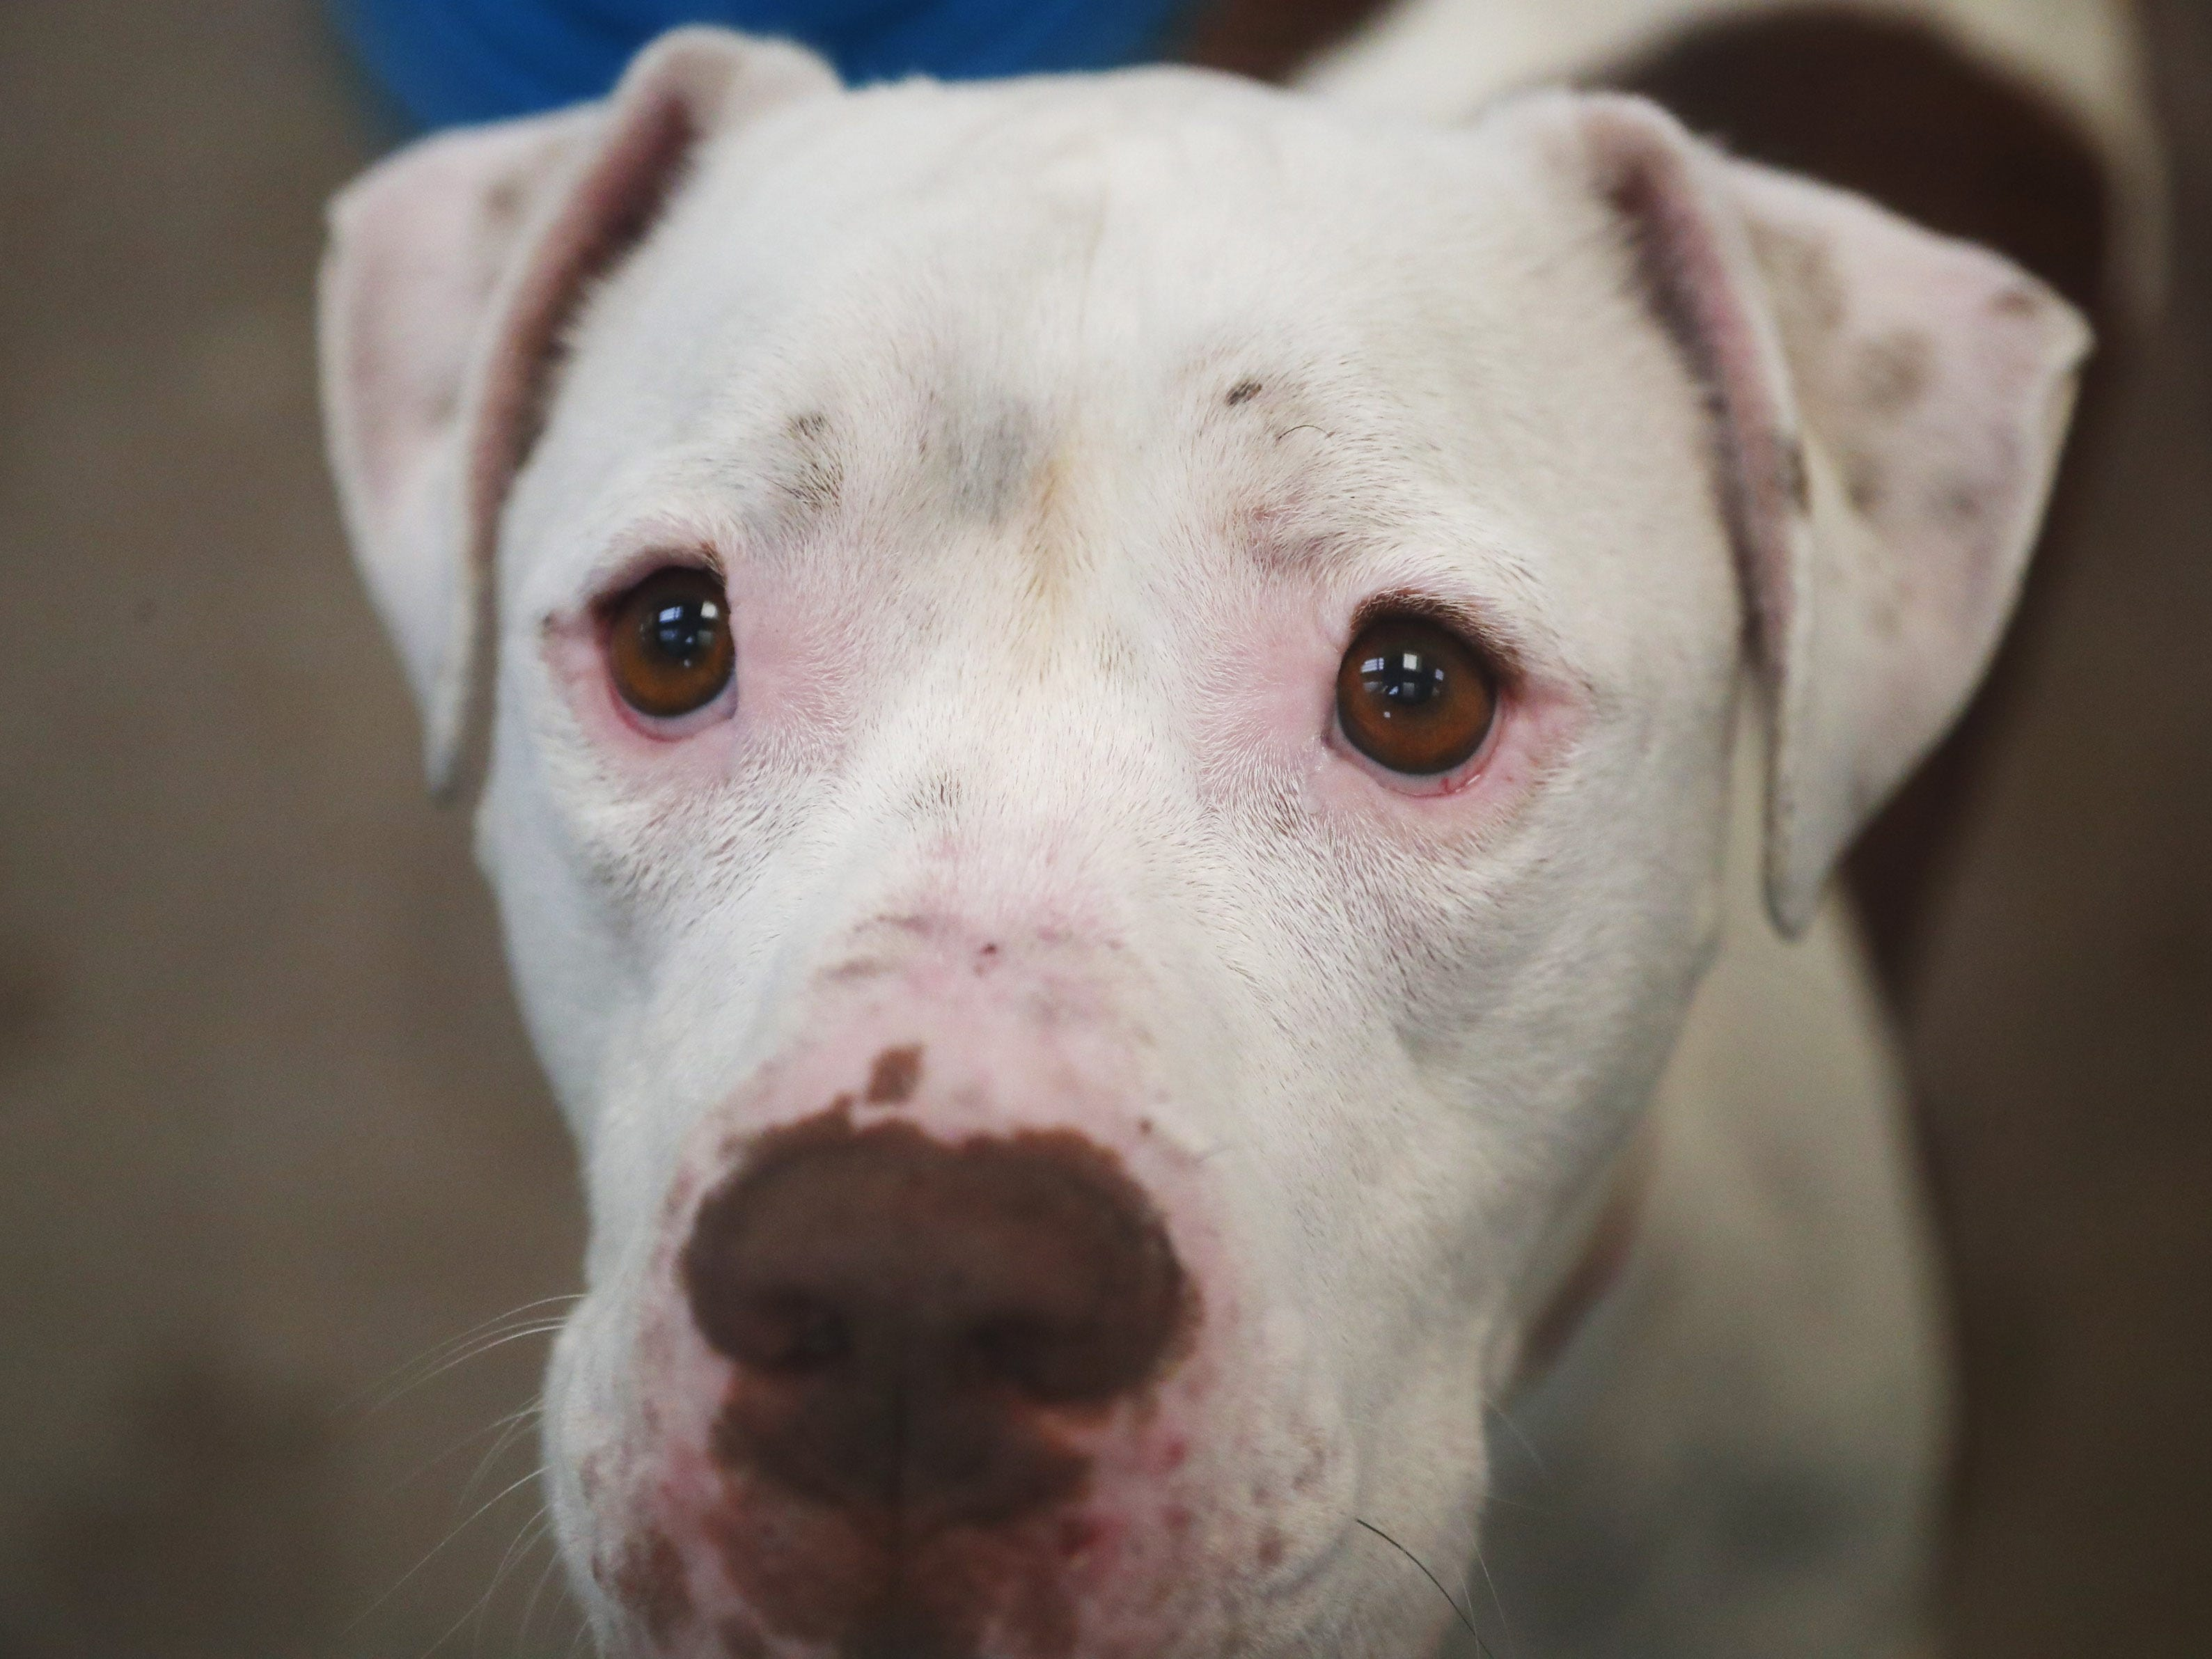 Toby, an American pit bull terrier, waits to be adopted at the Arizona Humane Society in Phoenix on April 1, 2019. More than 8,000 dogs and cats have been surrendered in Maricopa County since the start of the year.